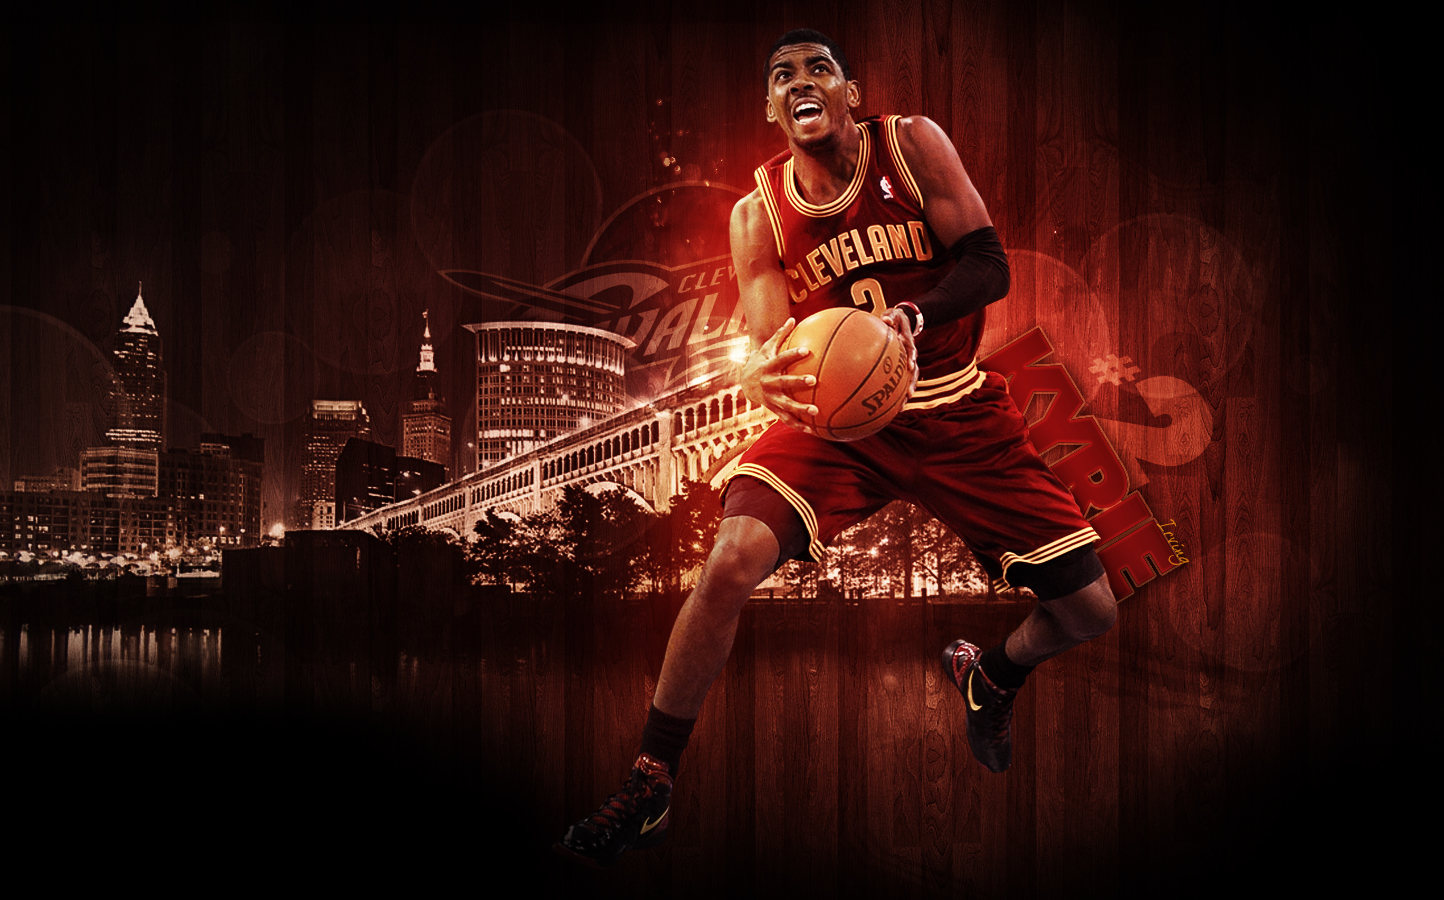 Kyrie Irving by DraftPick